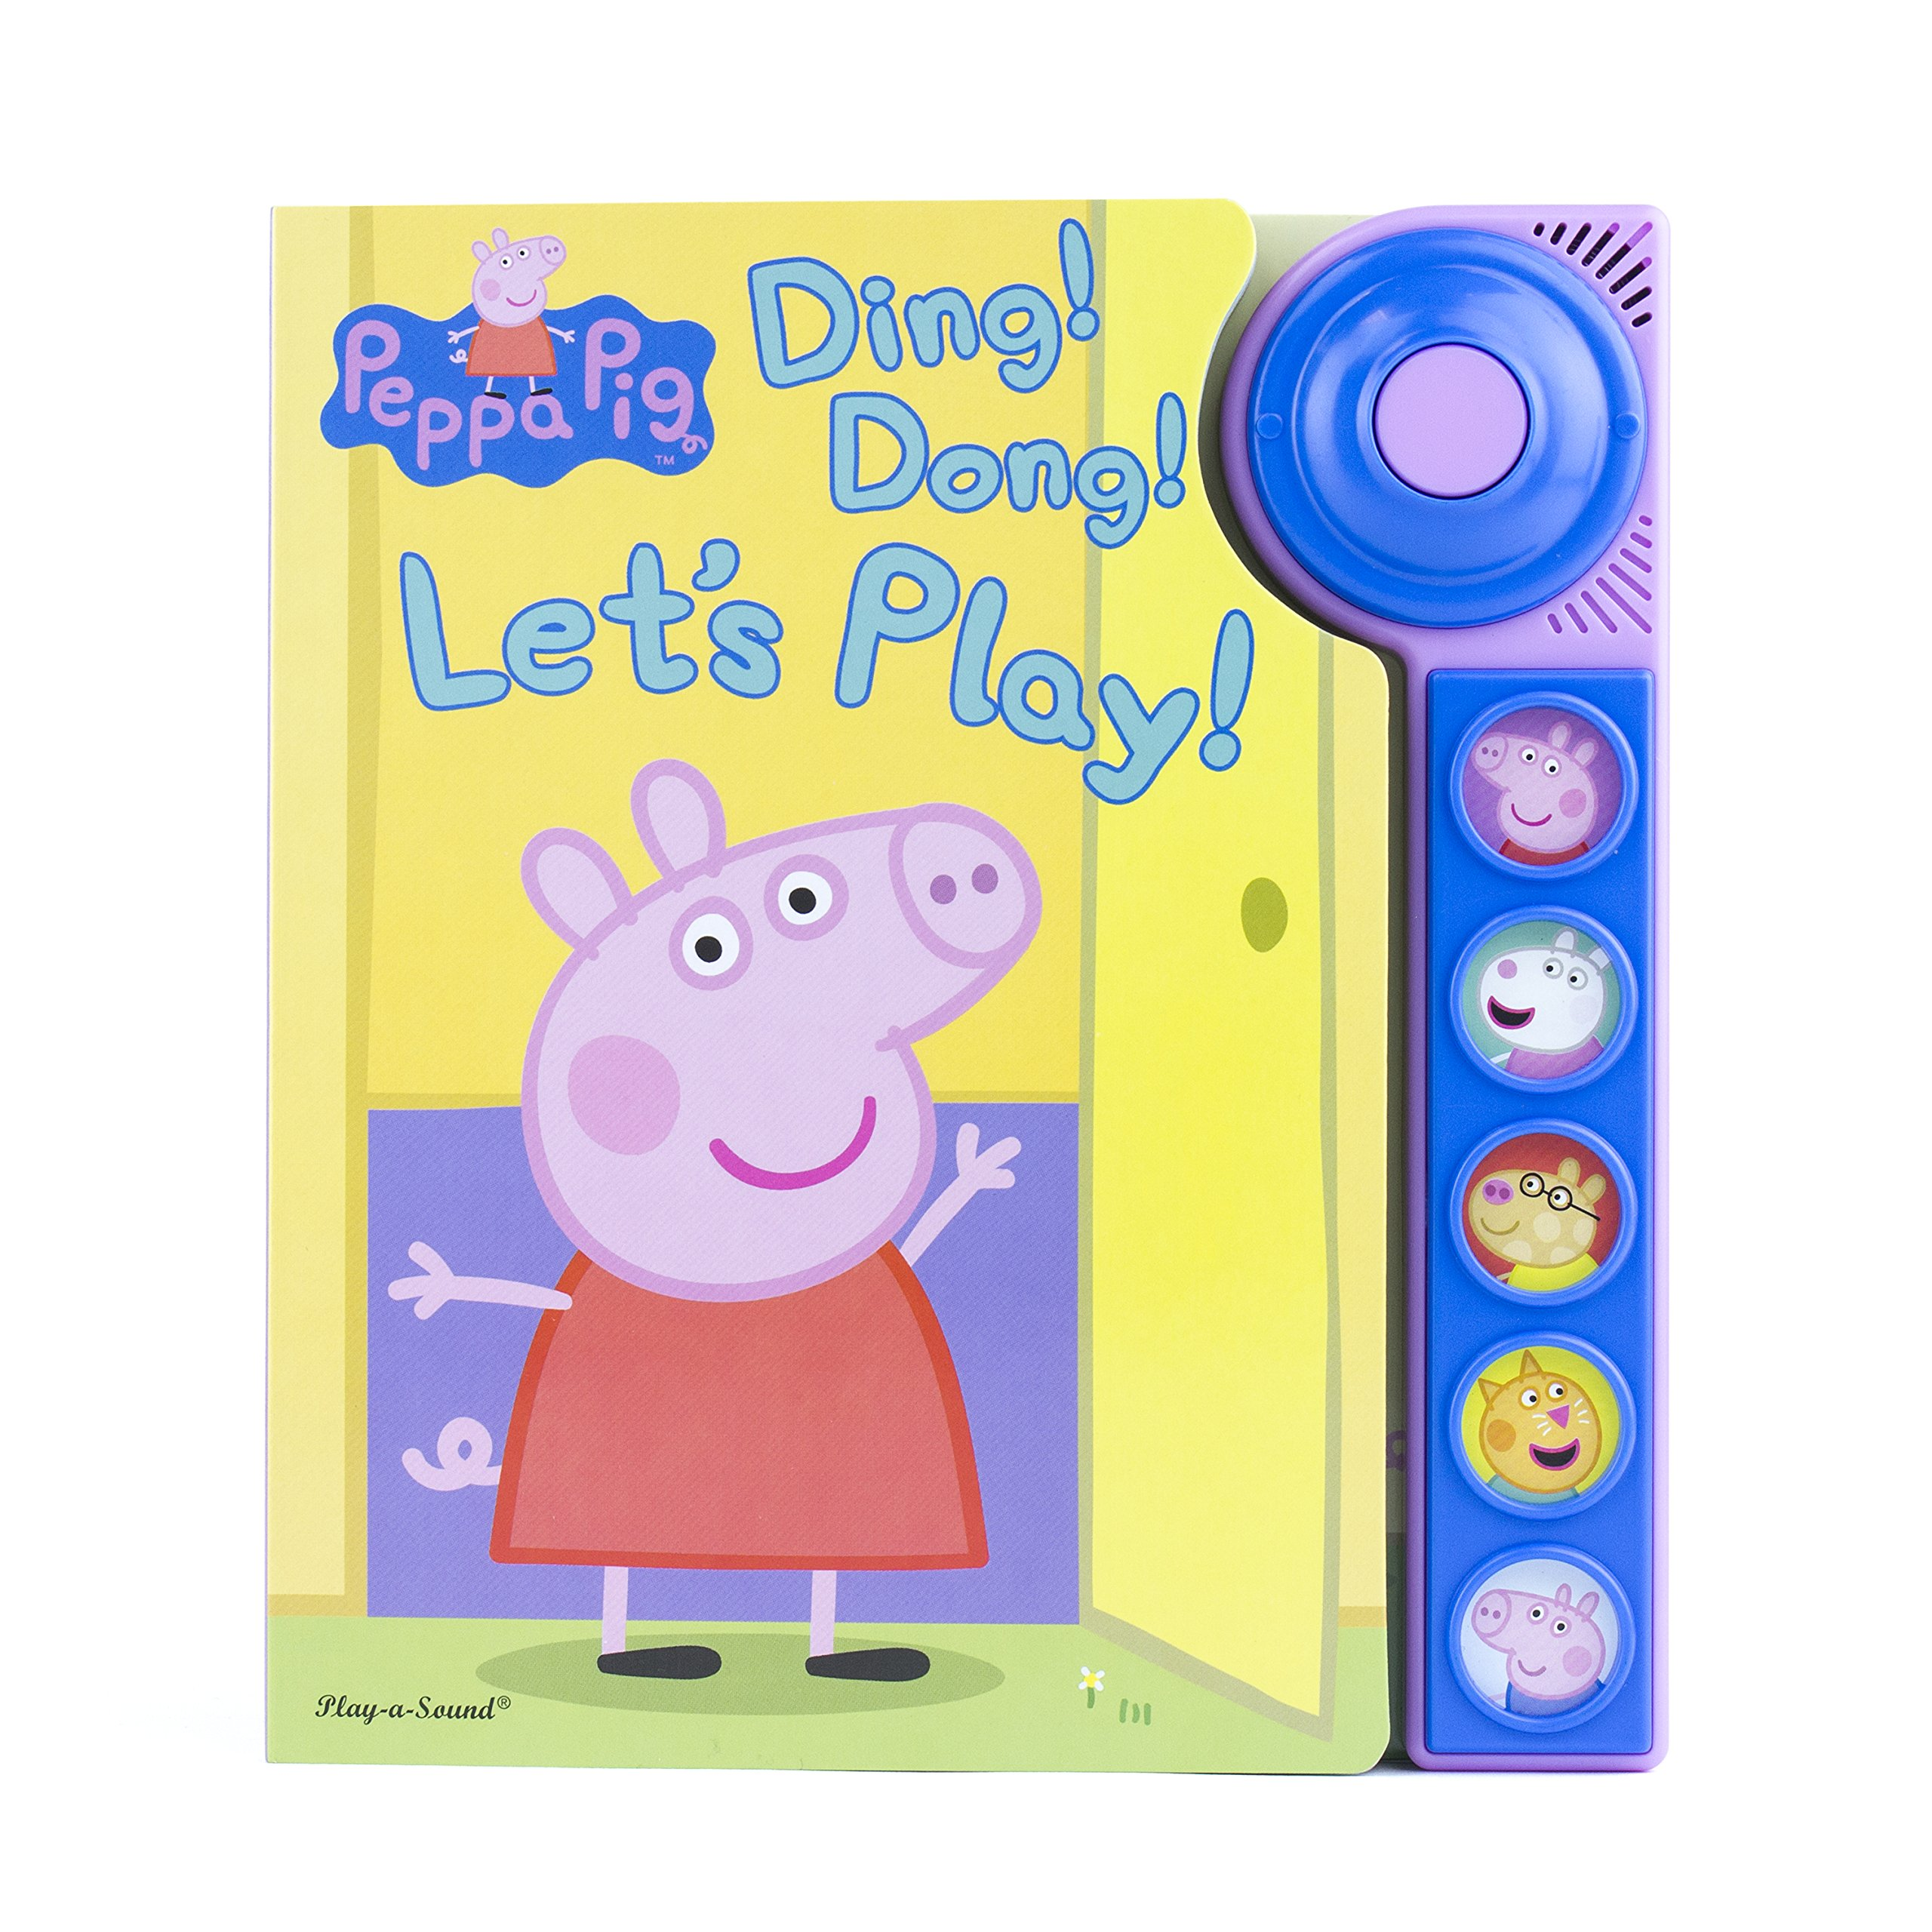 Peppa Pig - Ding! Dong! Let's Play! Doorbell Sound Book - PI